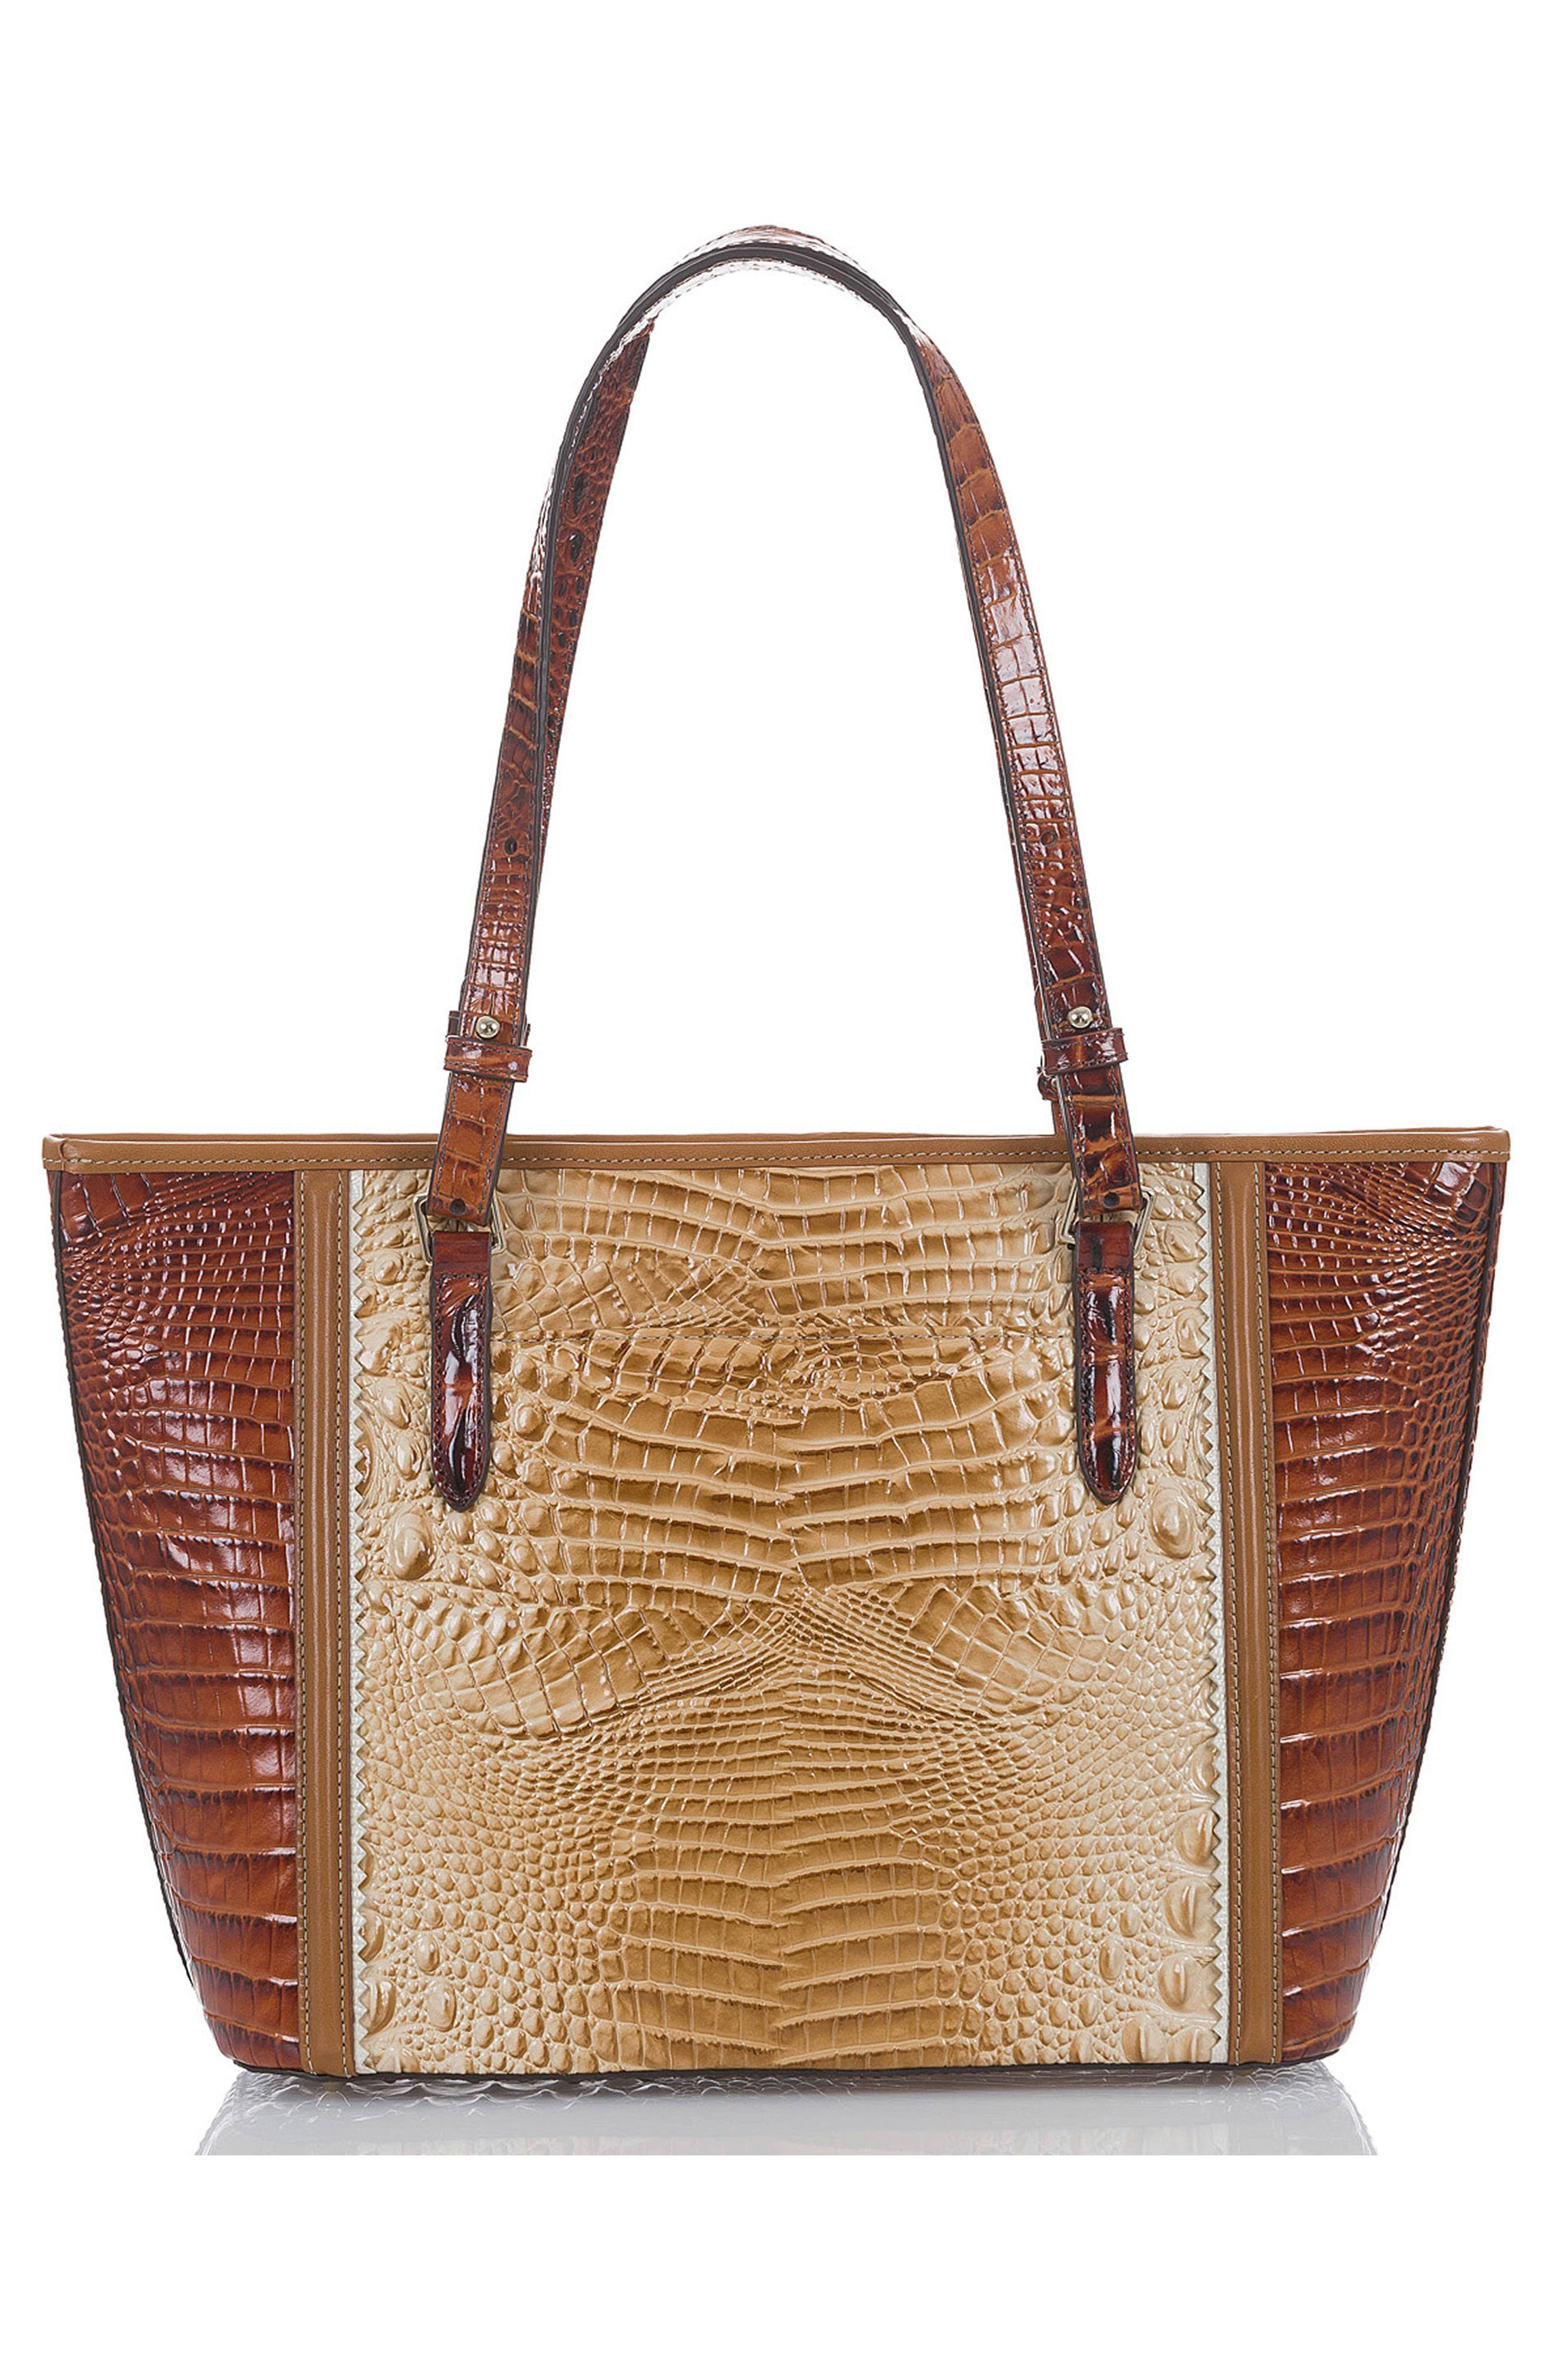 Medium Asher Embossed Leather Tote,                             Alternate thumbnail 2, color,                             250